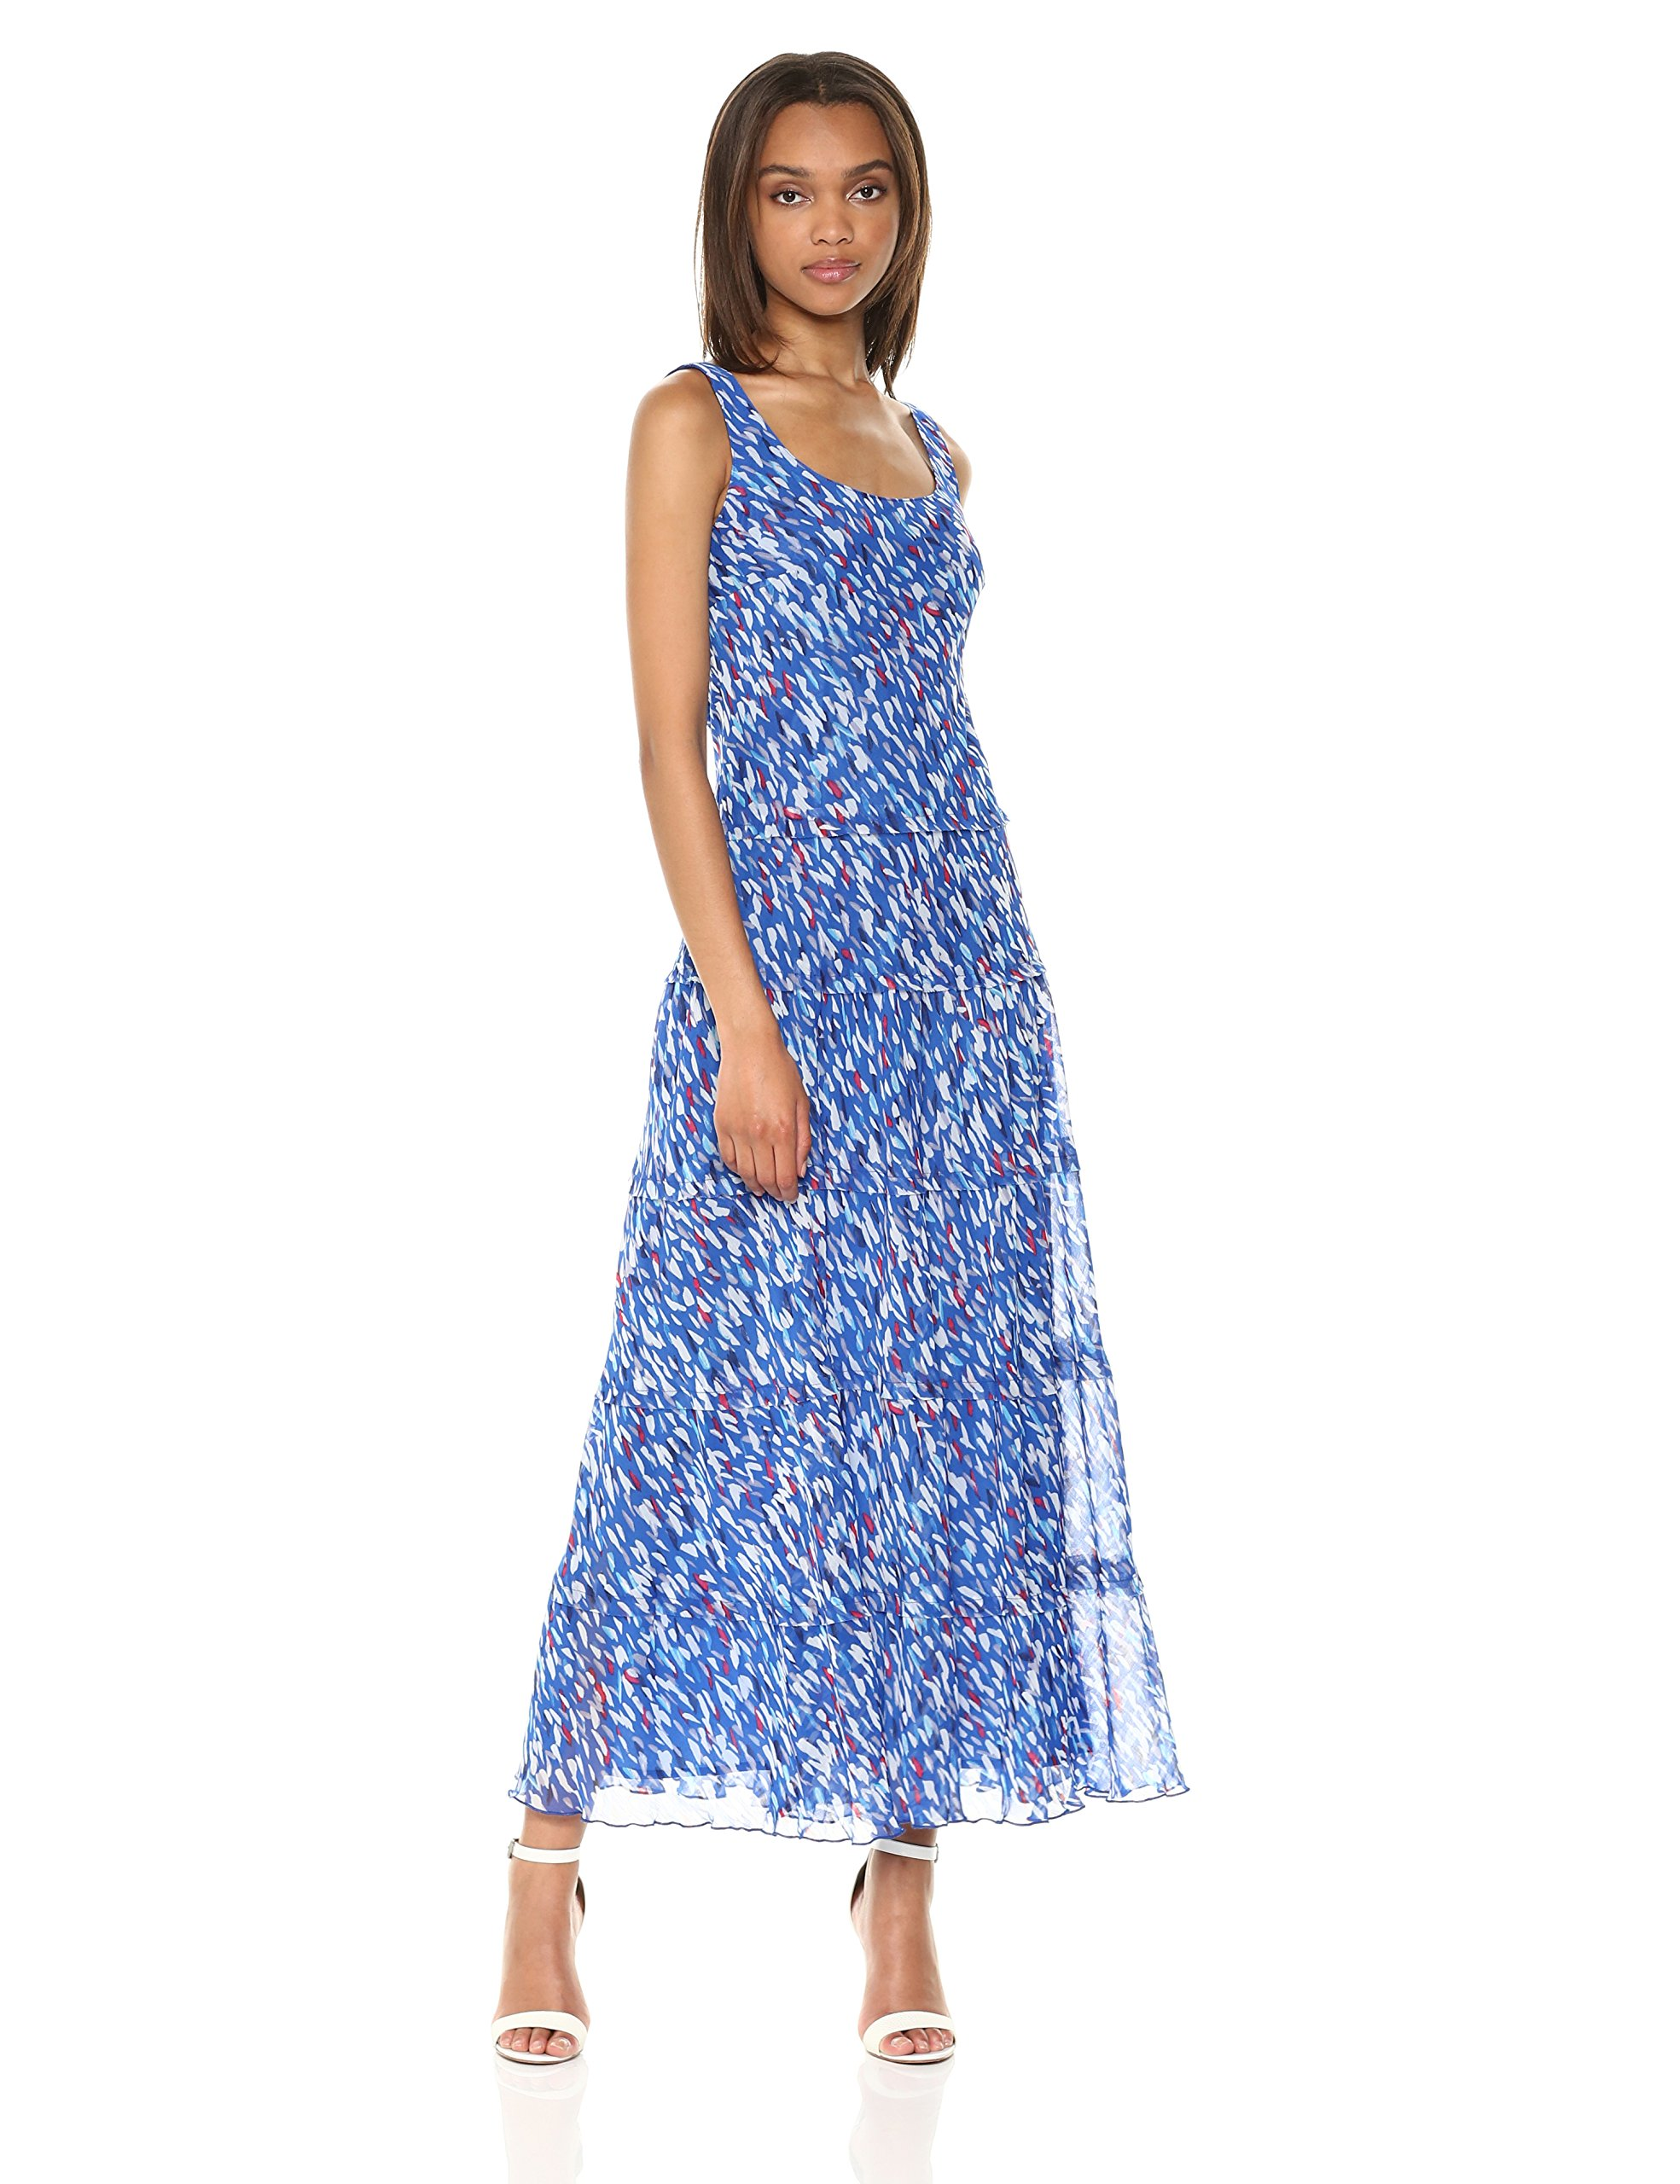 Available at Amazon: NINE WEST Women's Multi Tier Chiffon Maxi Dress